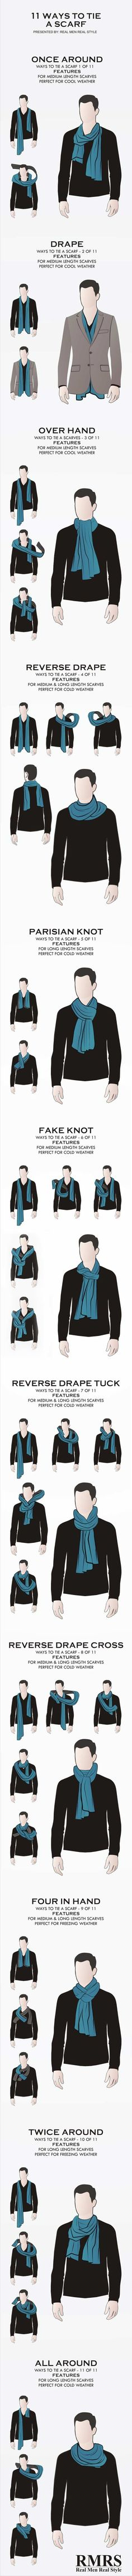 11 Ways To Tie A Men's Scarf Infographic | How To Tie Scarves Tutorial For Men